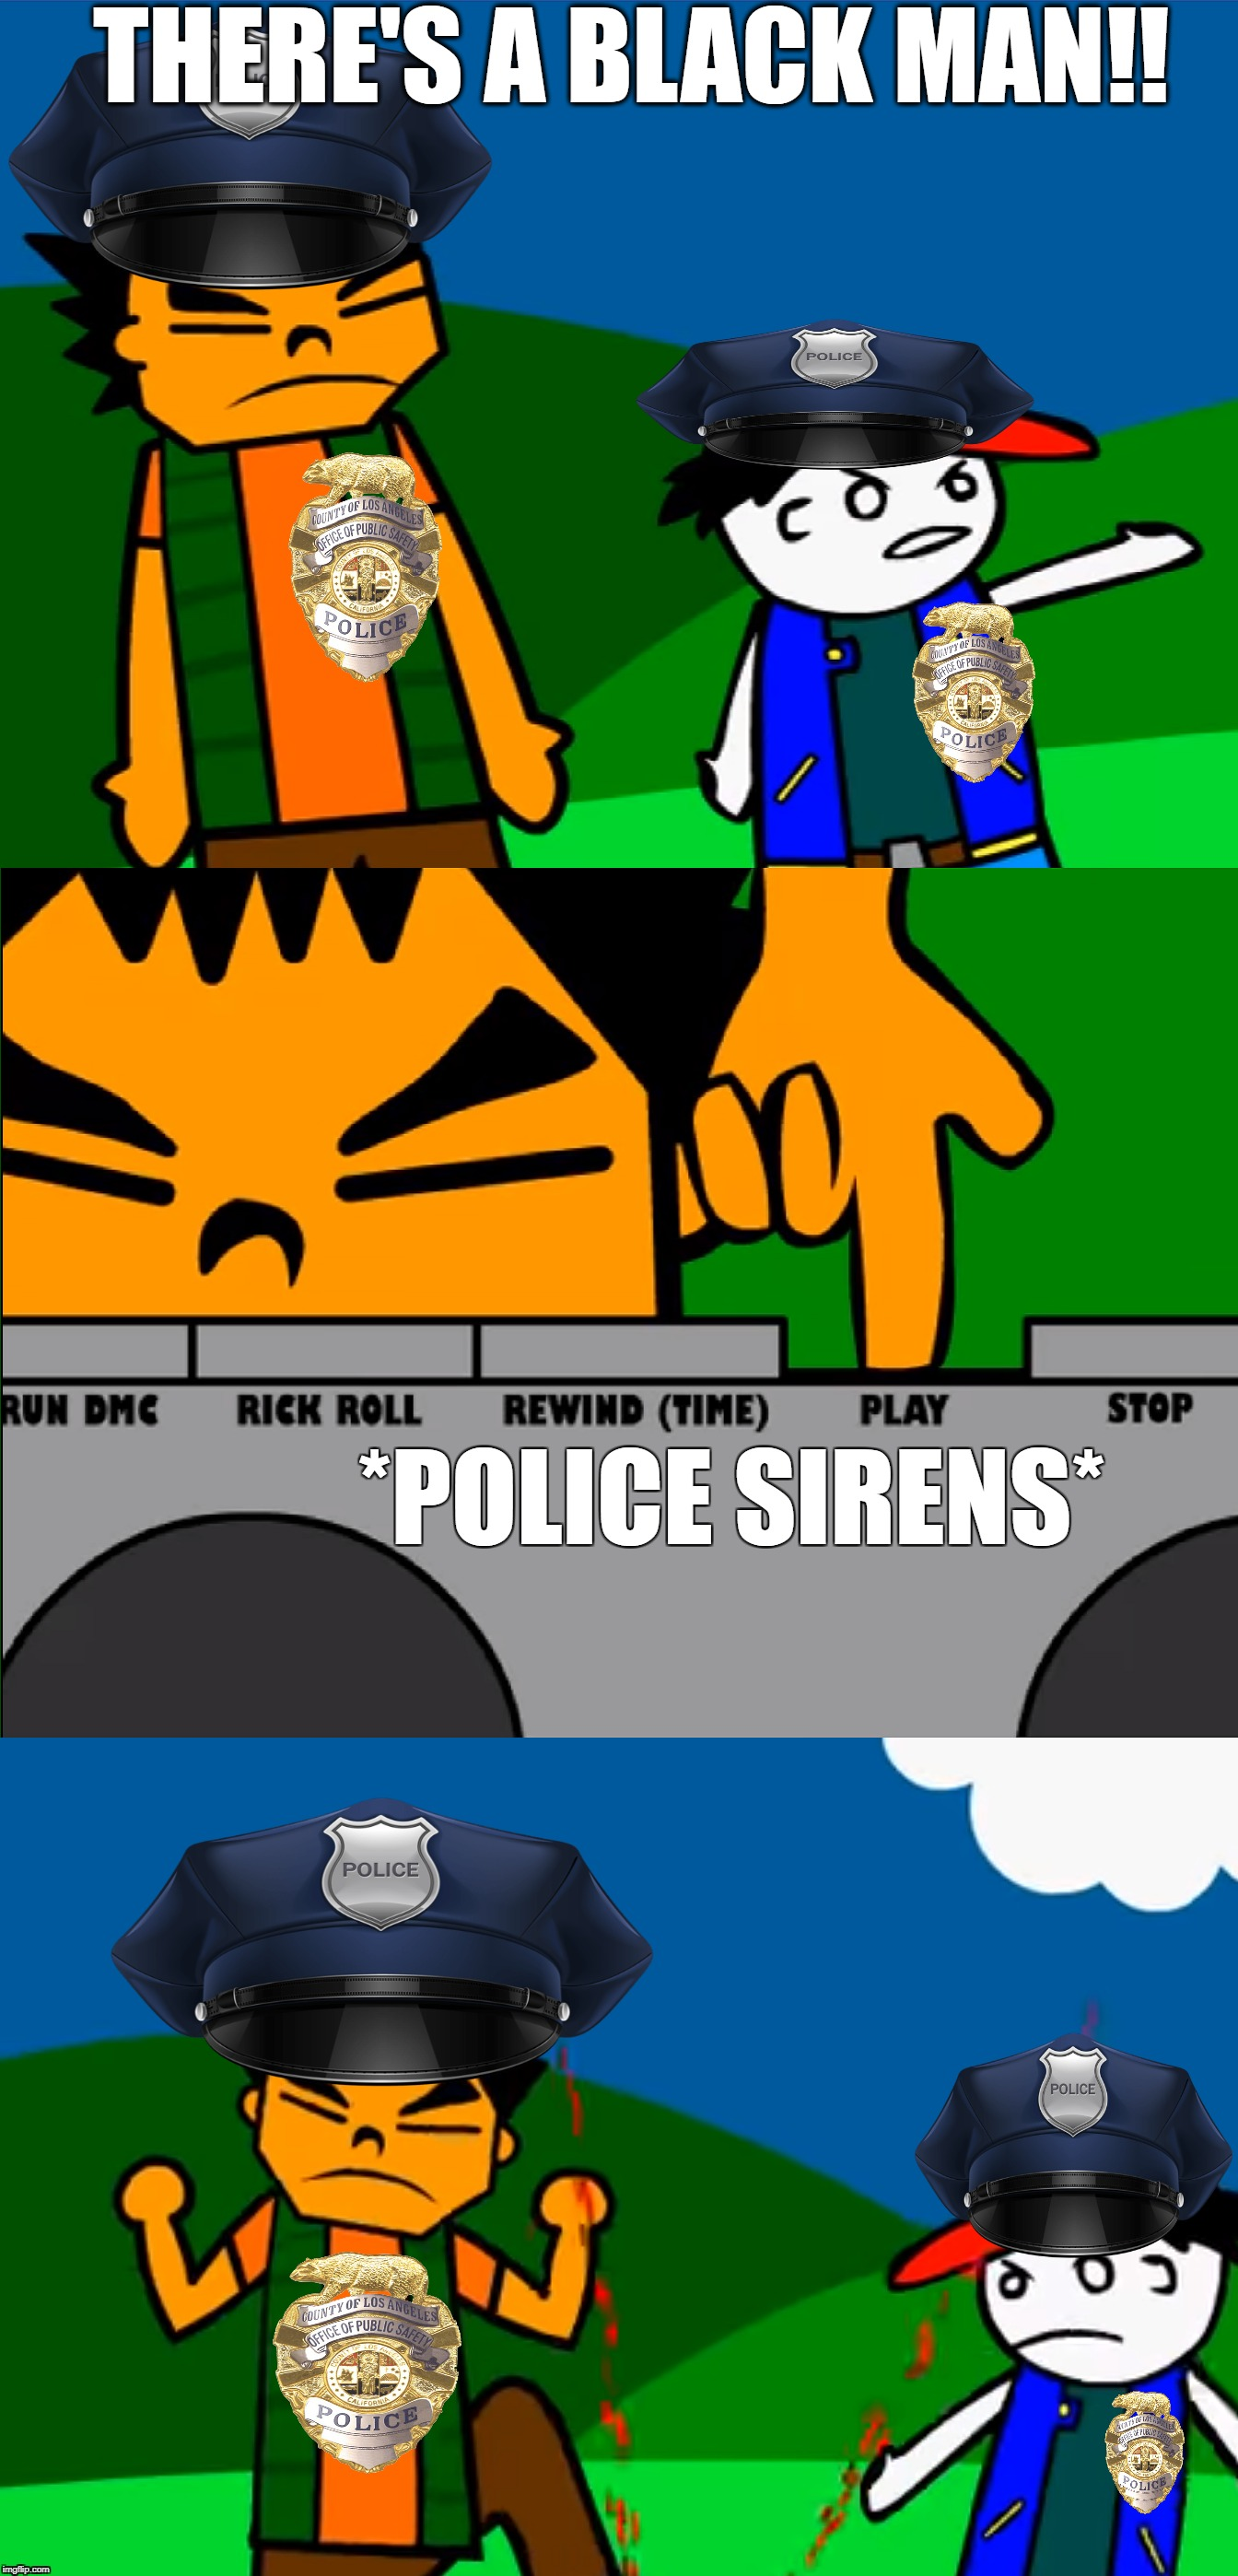 Police in the US | THERE'S A BLACK MAN!! *POLICE SIRENS* | image tagged in there's_a_pokemon,police,pokemon,thehamwalletdotcom | made w/ Imgflip meme maker